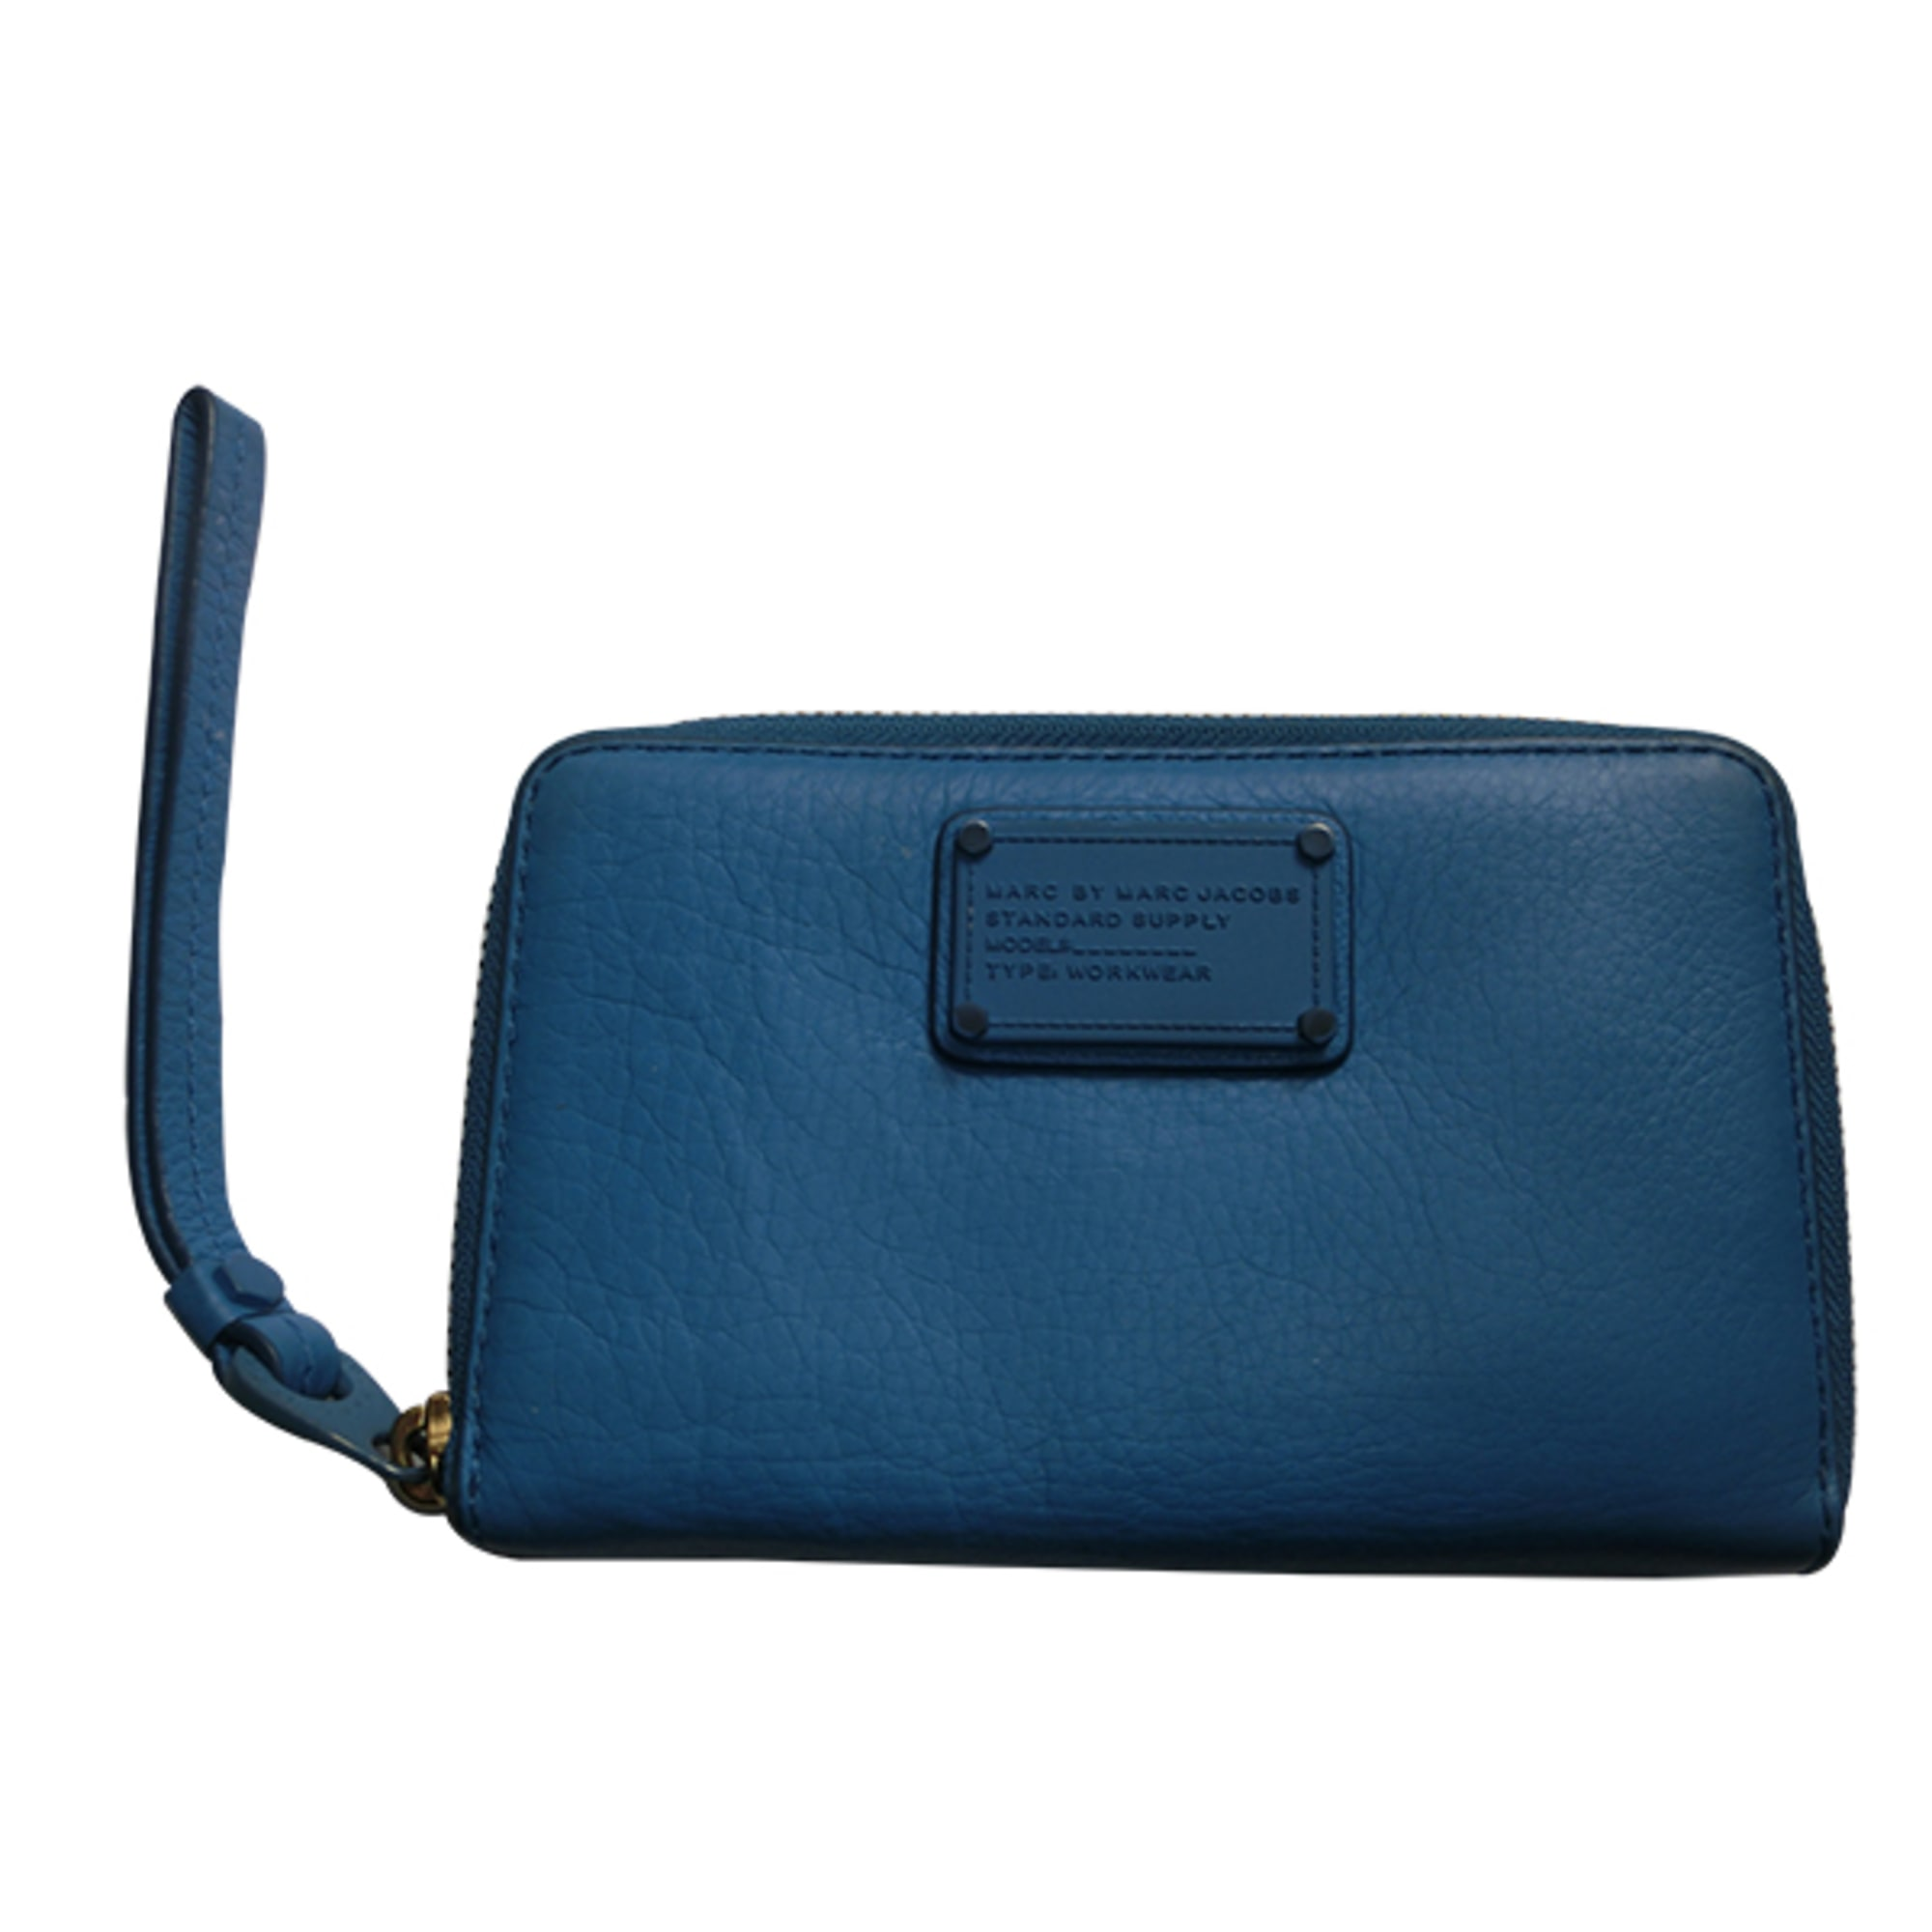 Revolutionary gravel defeat  Pochette MARC JACOBS bleu - 4125997